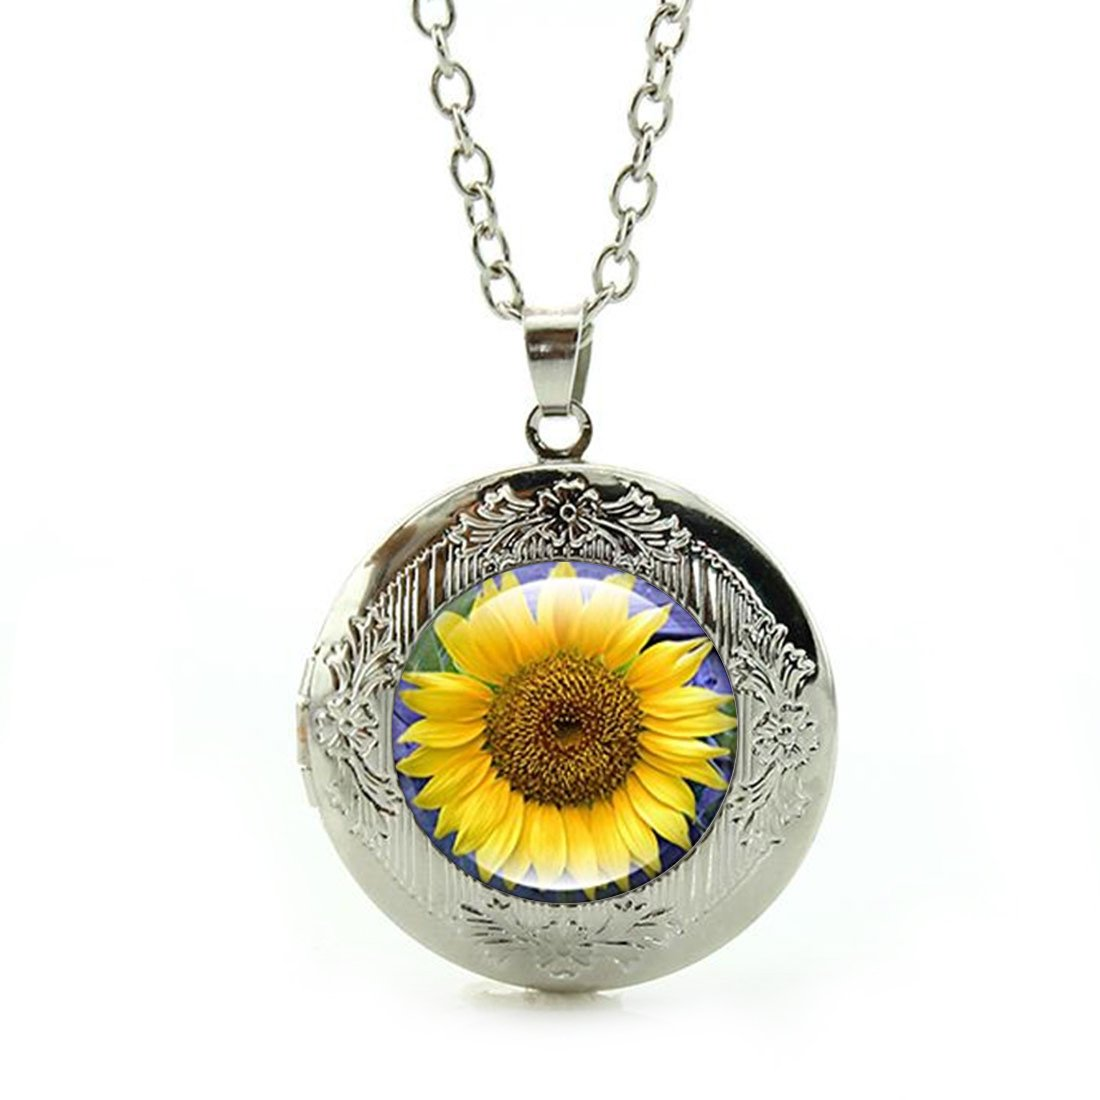 Women's Custom Locket Closure Pendant Necklace Sunflower Included Free Silver Chain, Best Gift Set by LooPoP